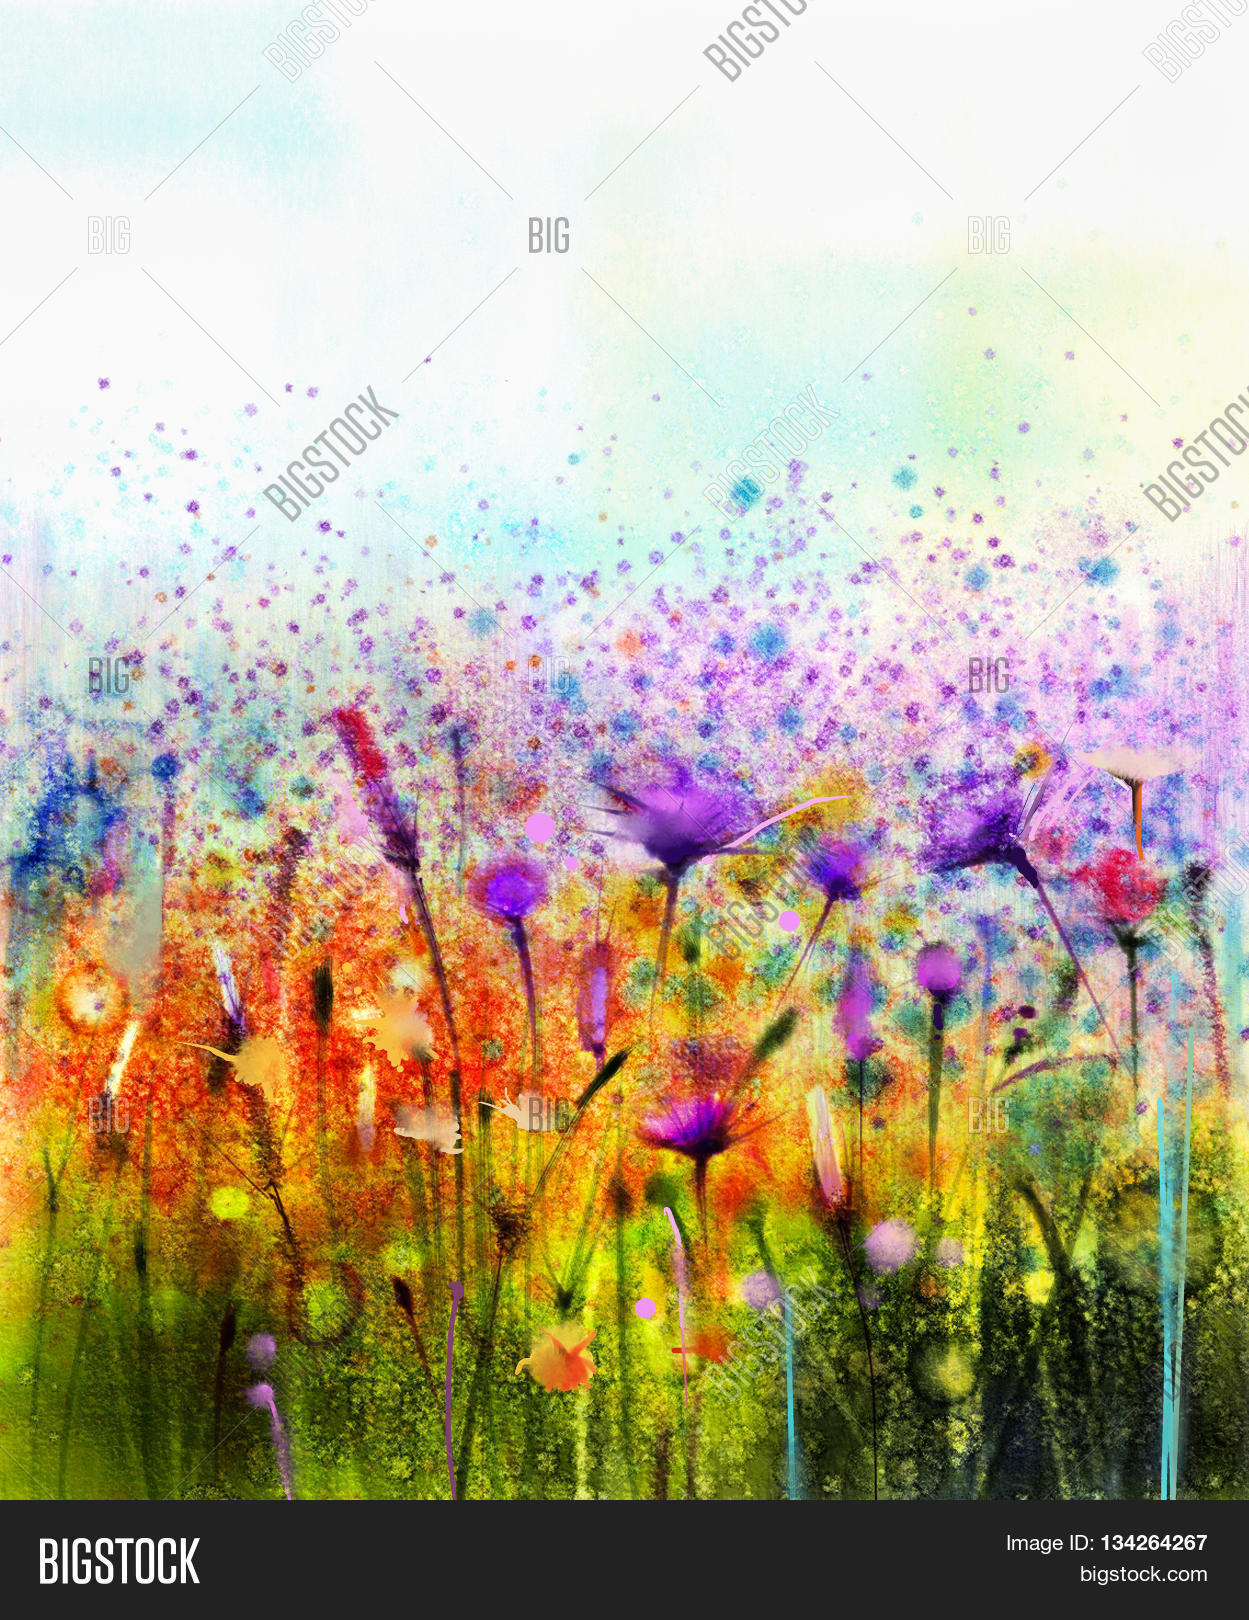 Abstract watercolor image photo free trial bigstock for How to paint abstract with watercolors